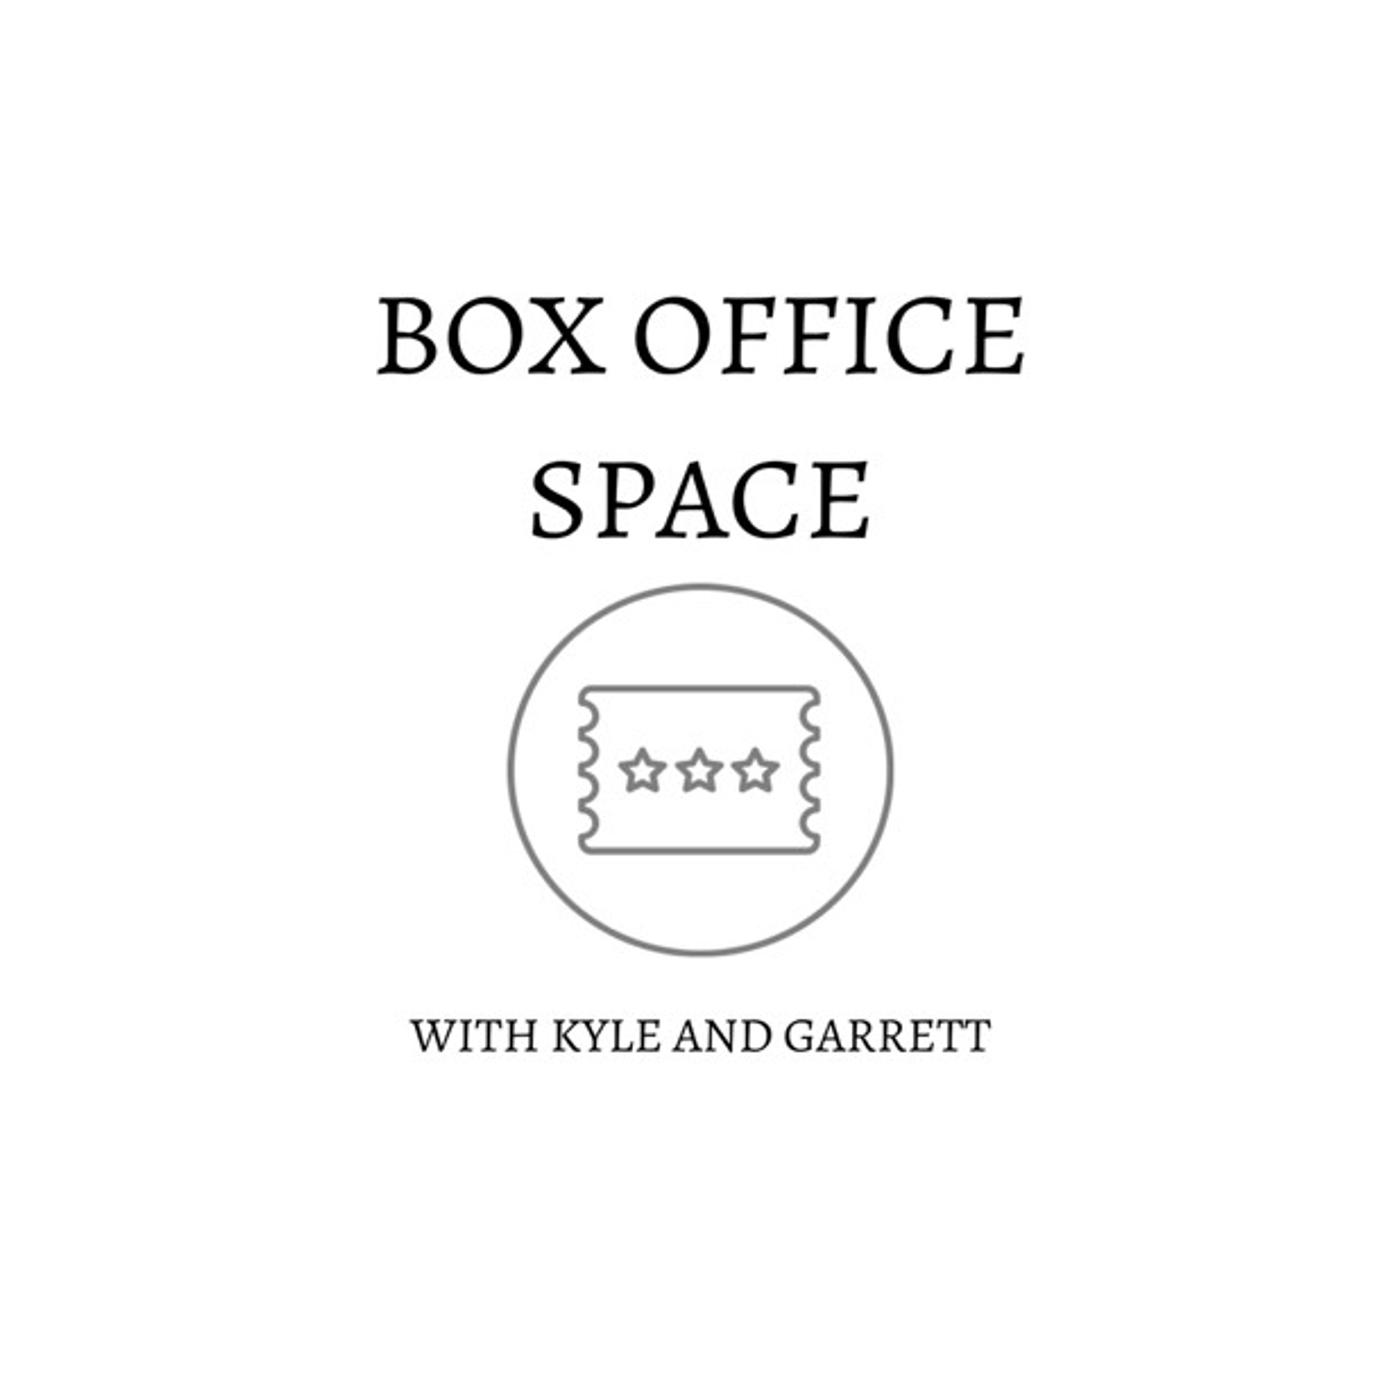 Box Office Space Episode 1 - The Clown?